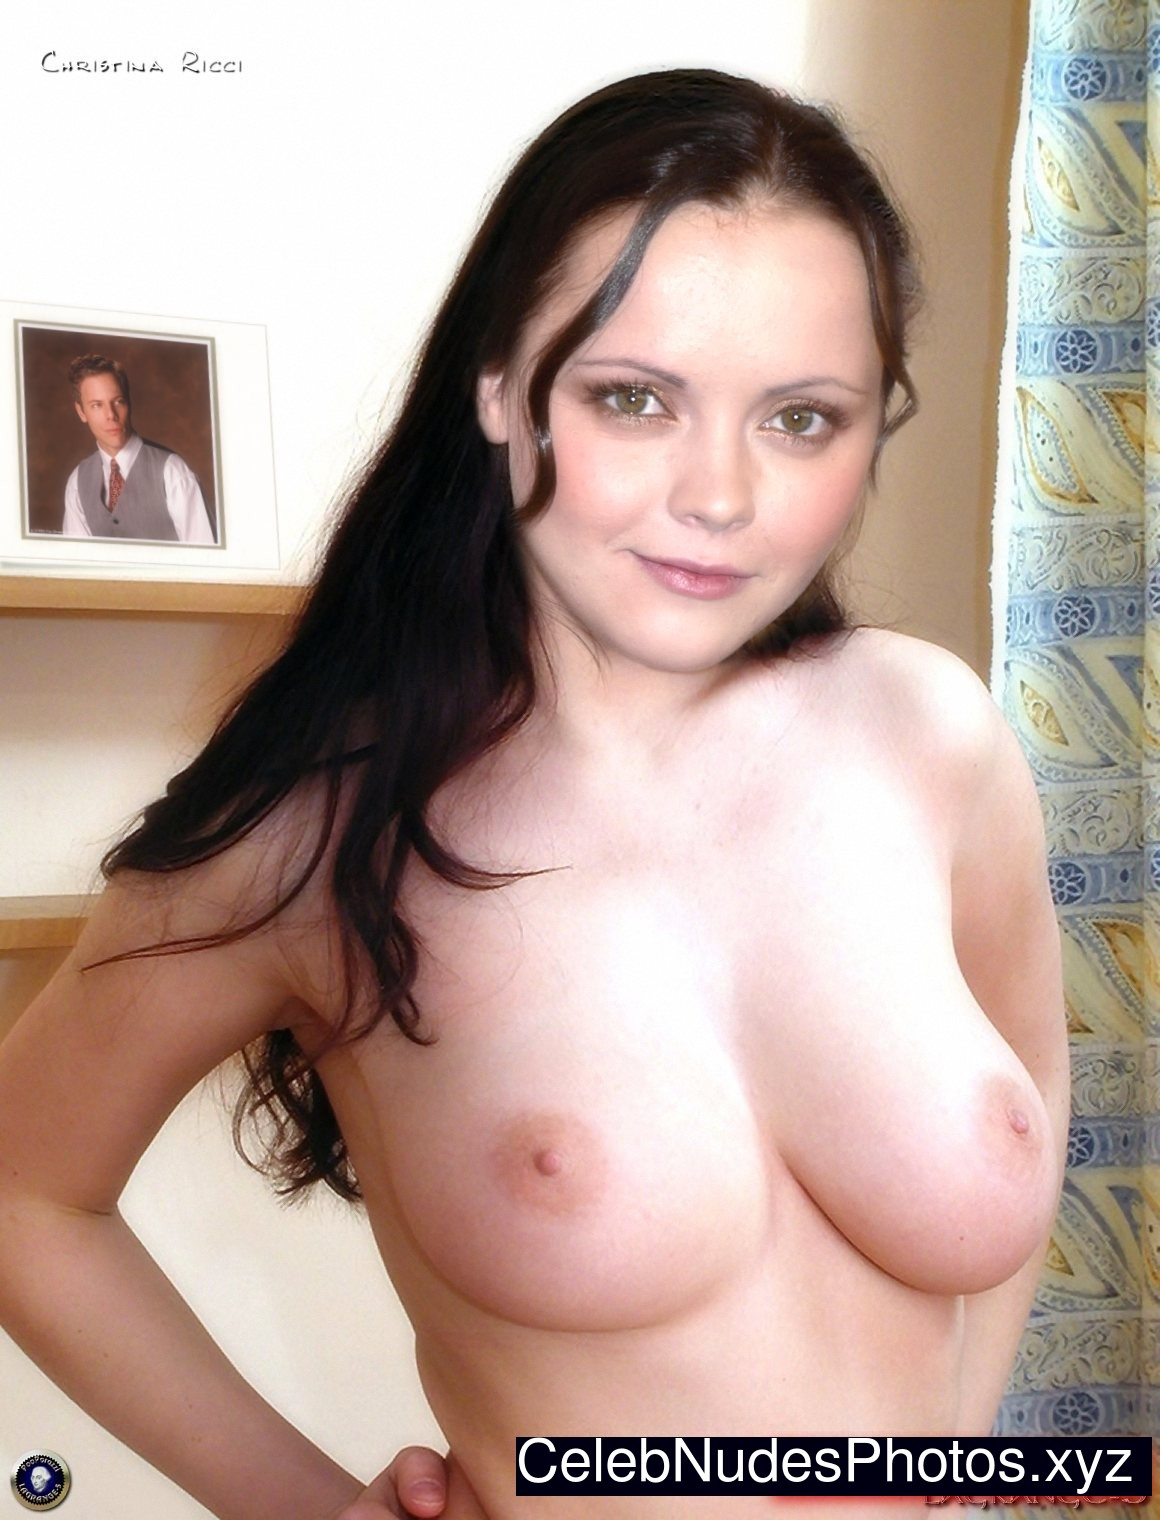 Have hit fake pussy christina ricci have